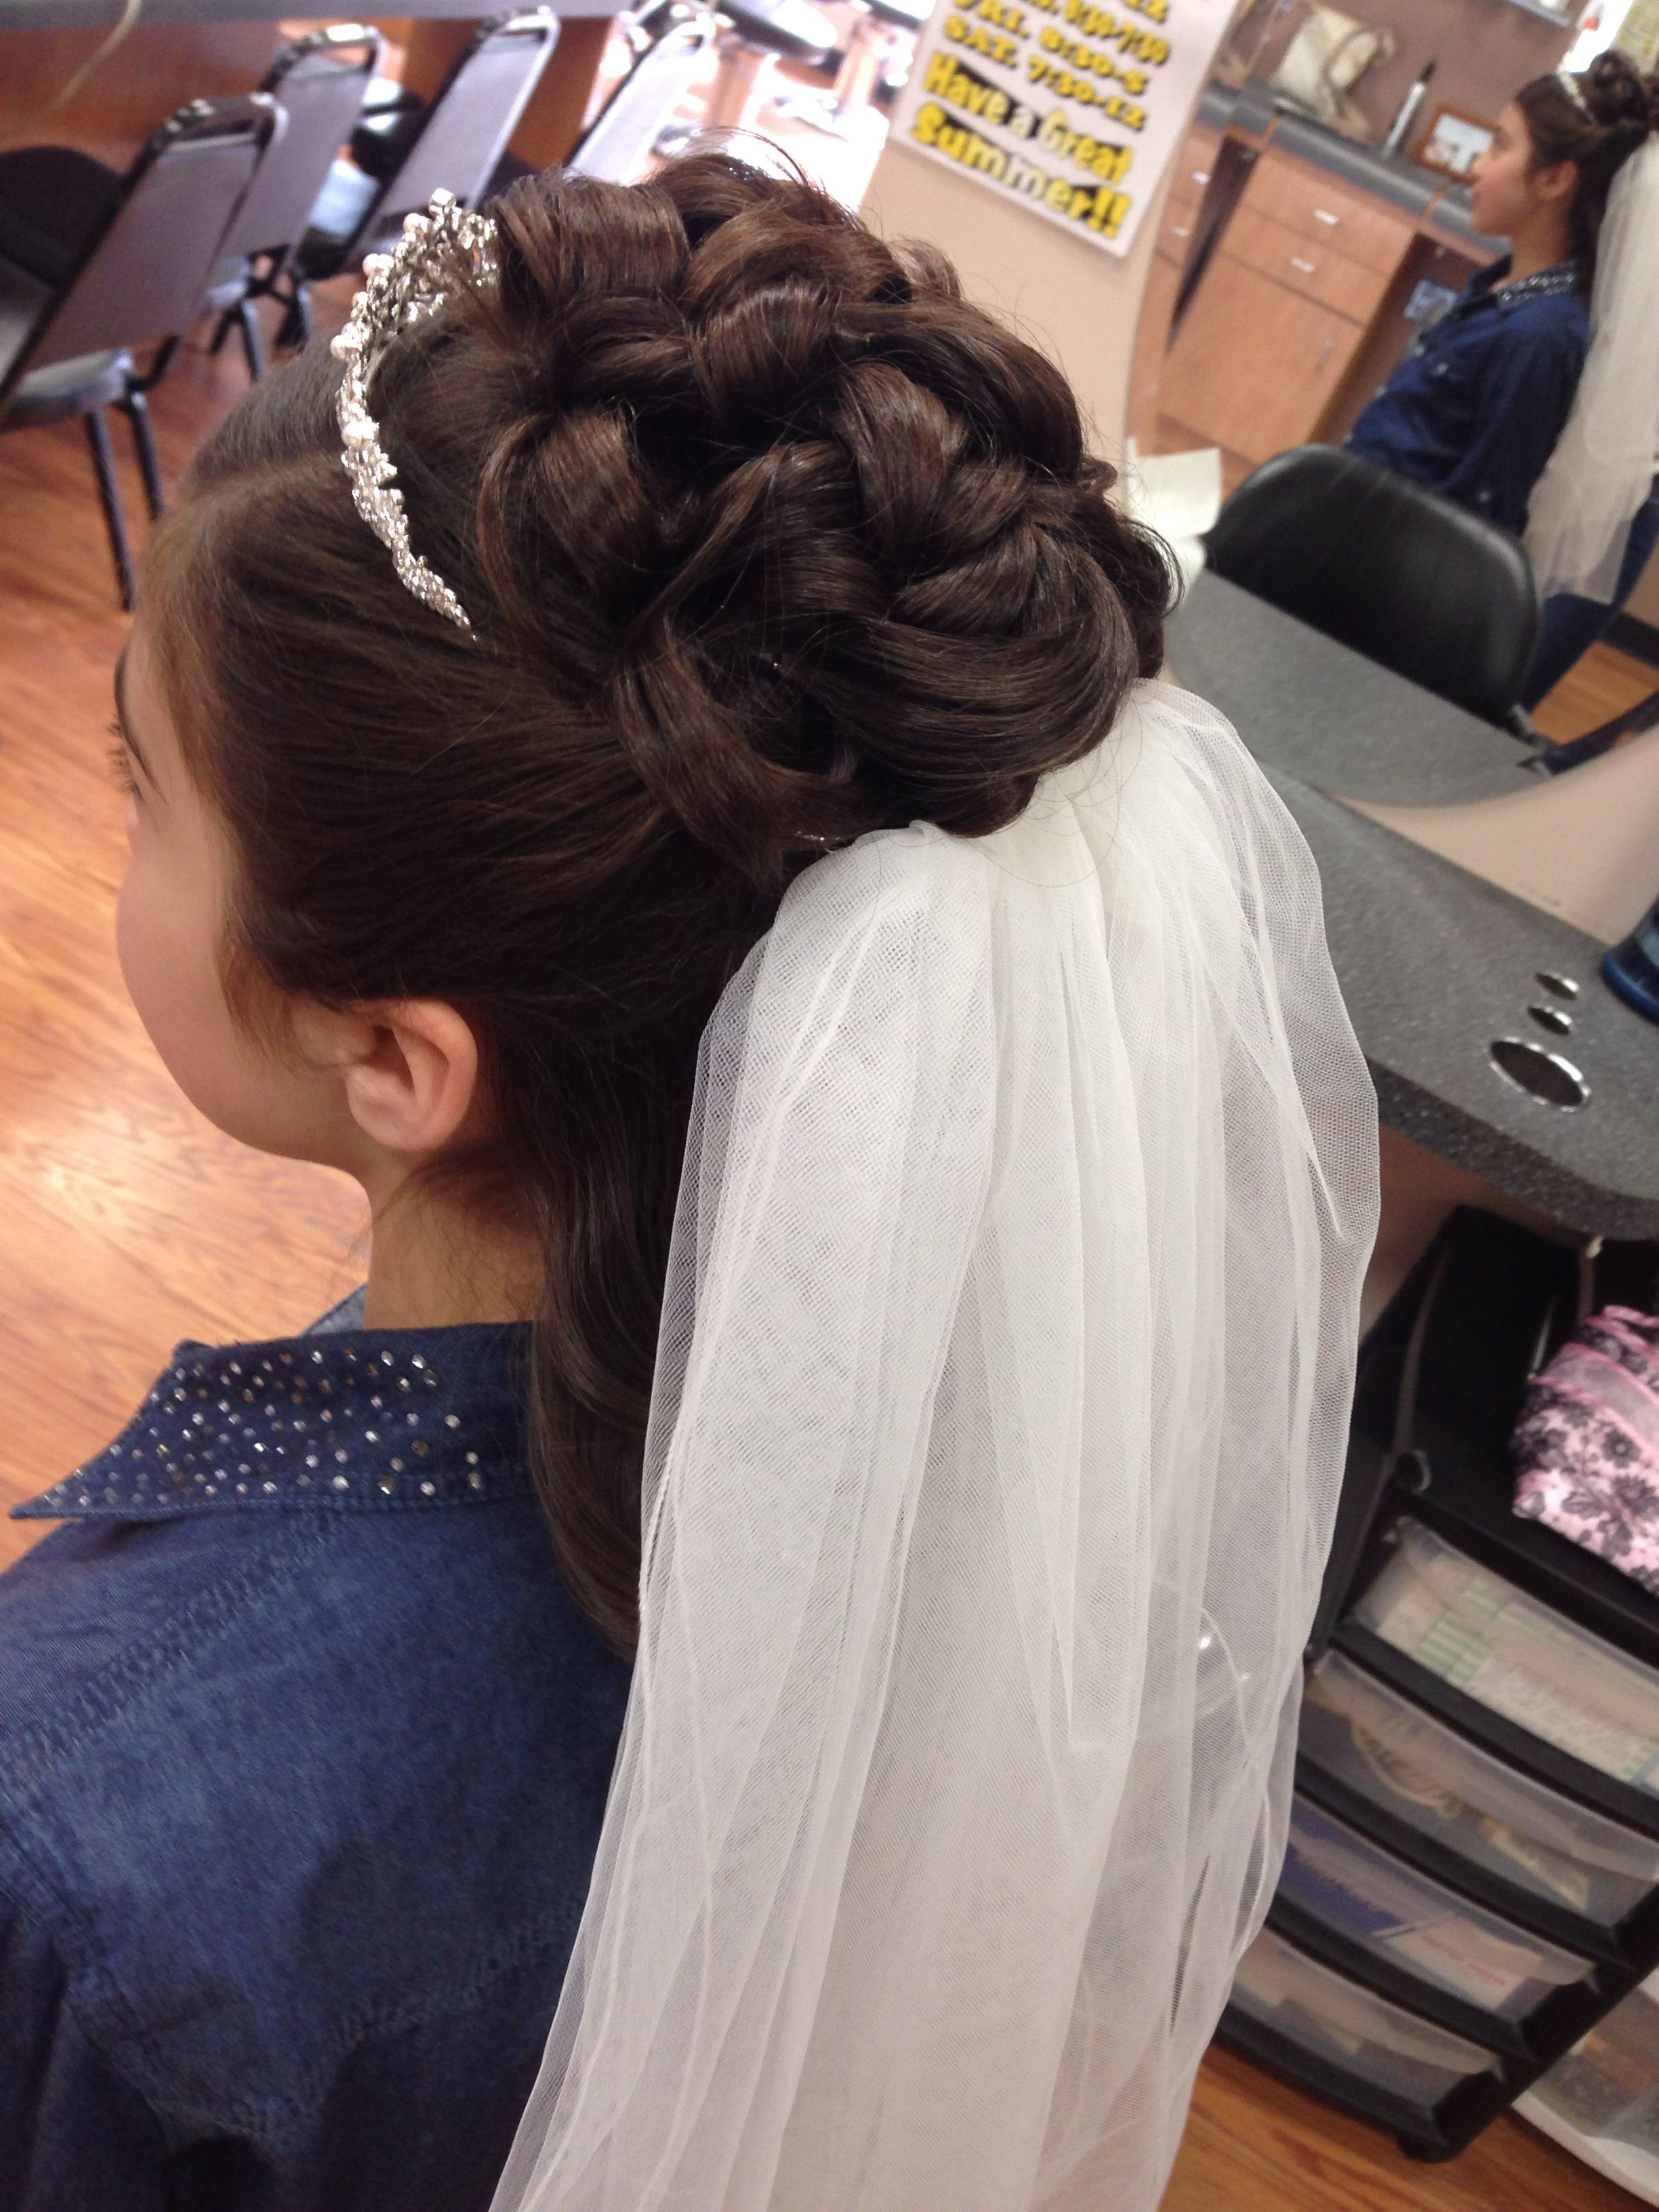 Pin By Samantha Ditta On Hair Nails Makeup First Communion Hairstyles Communion Hairstyles Peinados Hair Styles